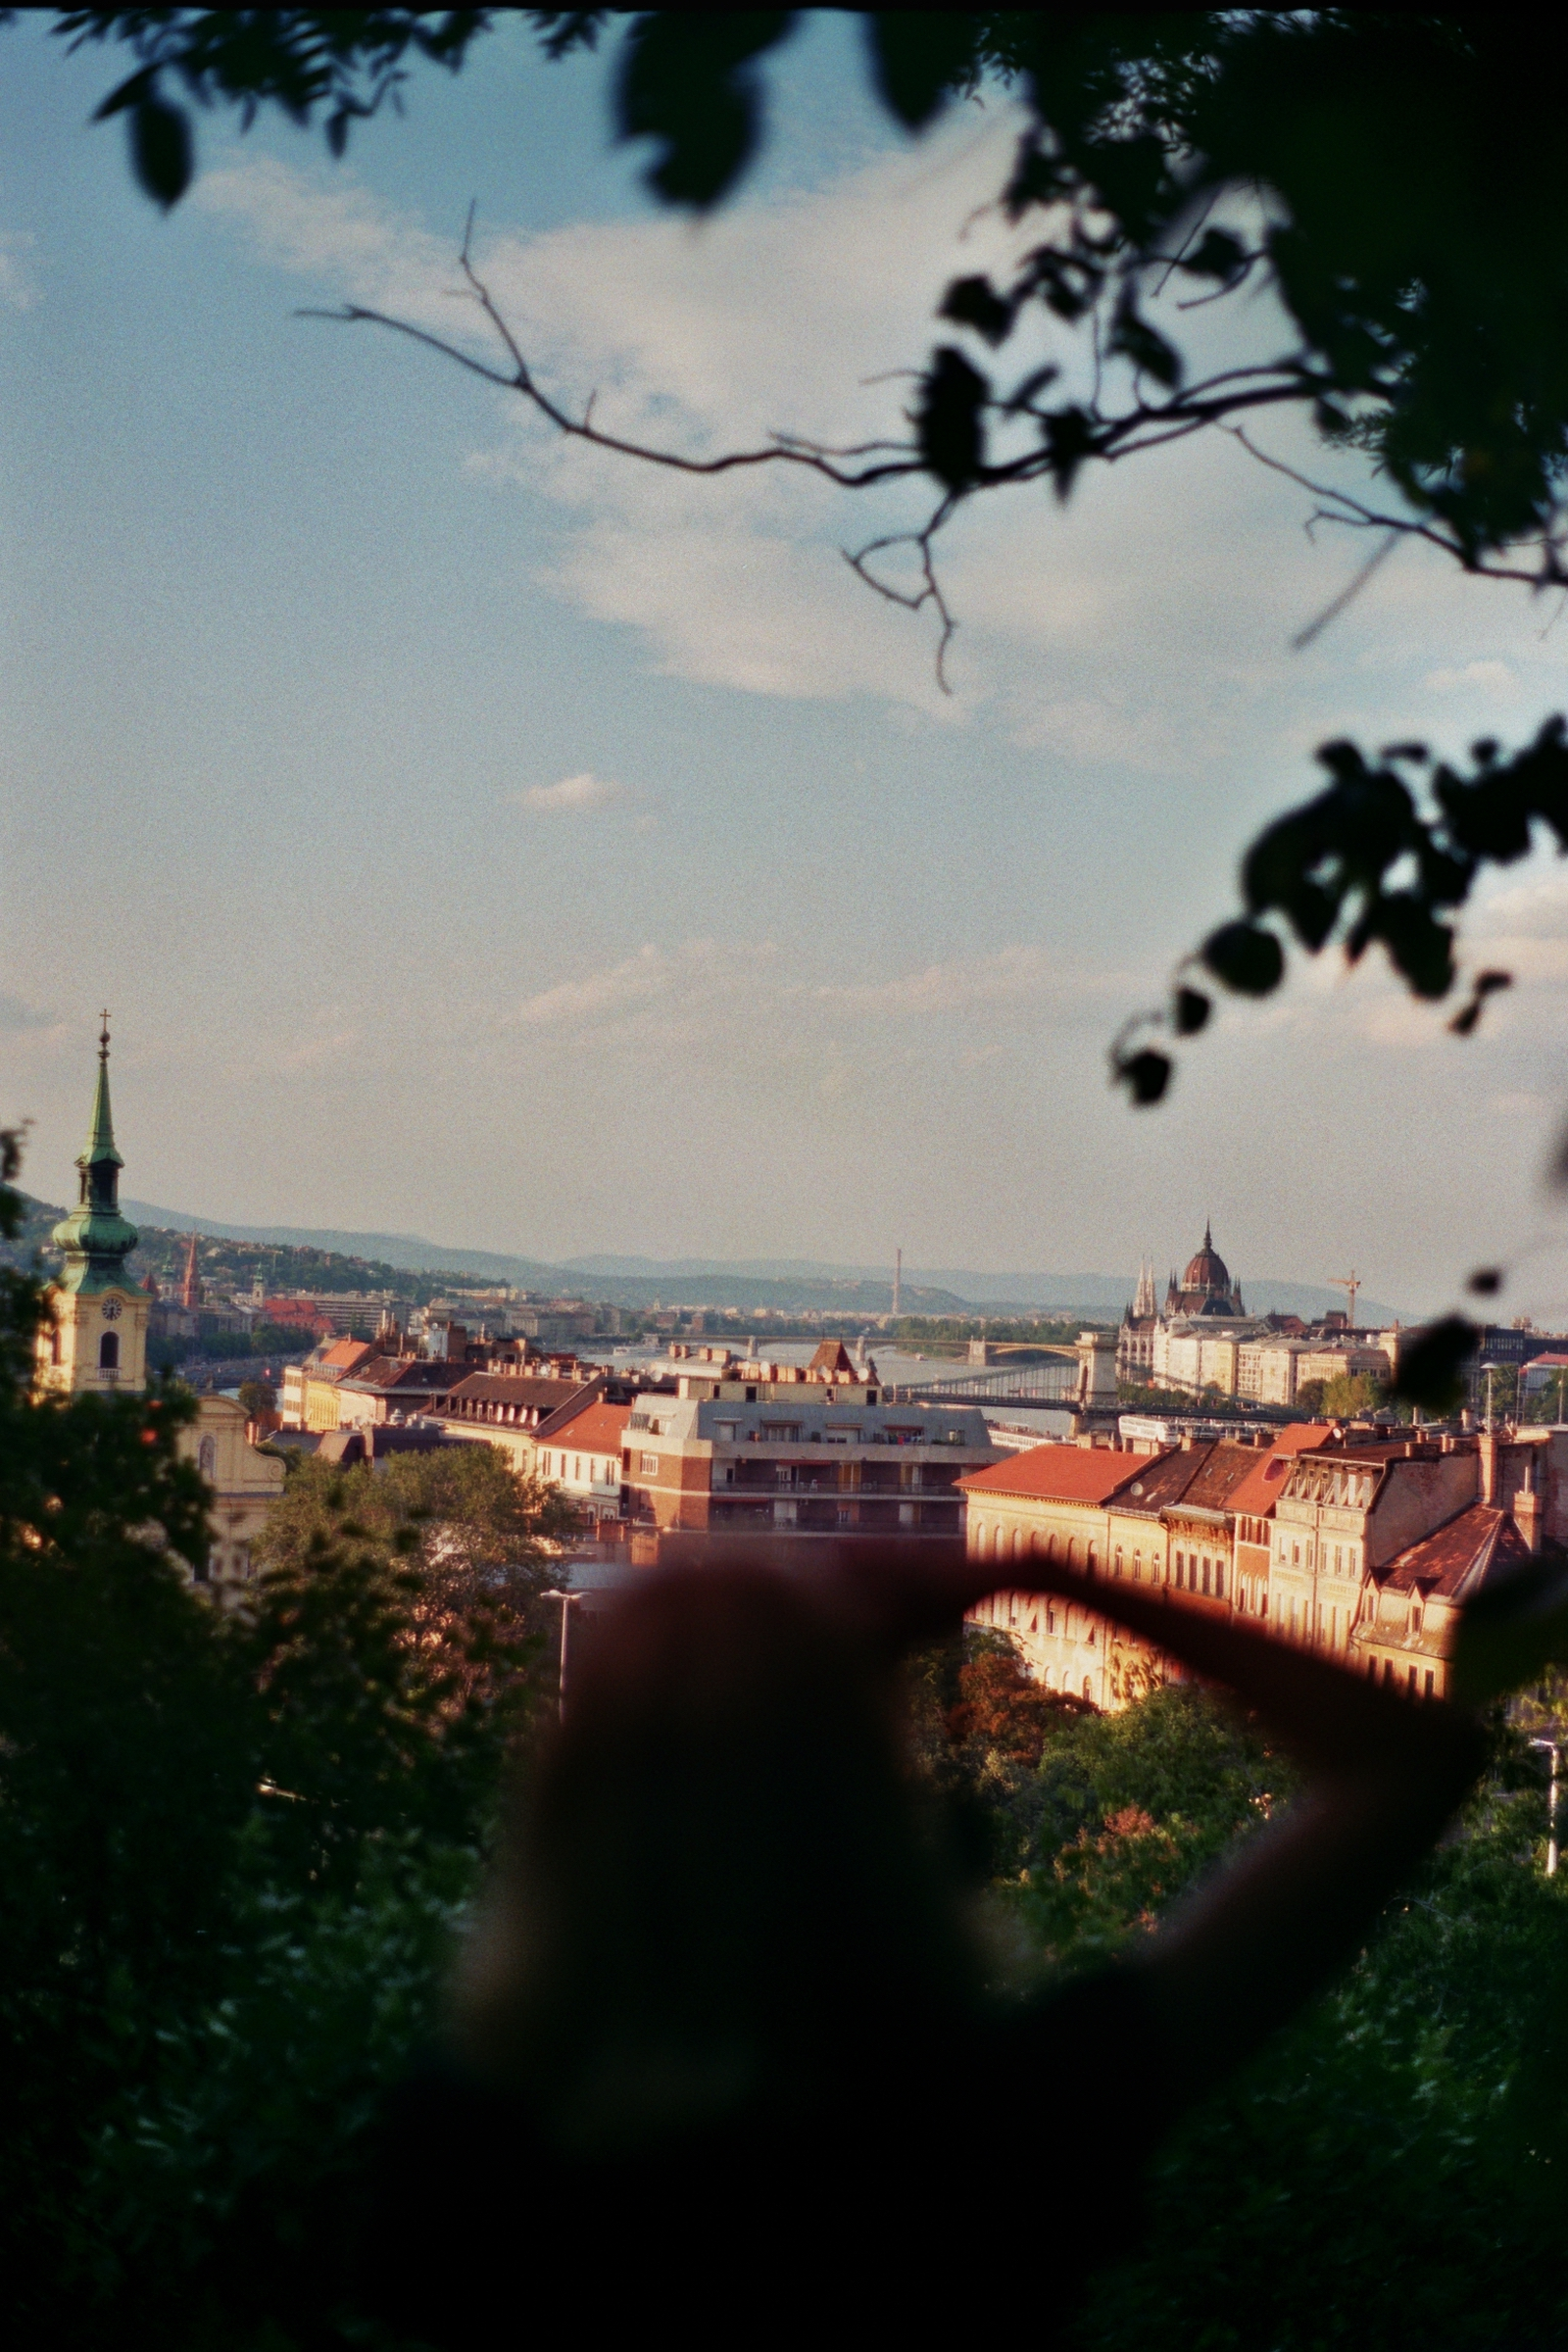 Budapest, 2017, film photography, Lewis Isbell